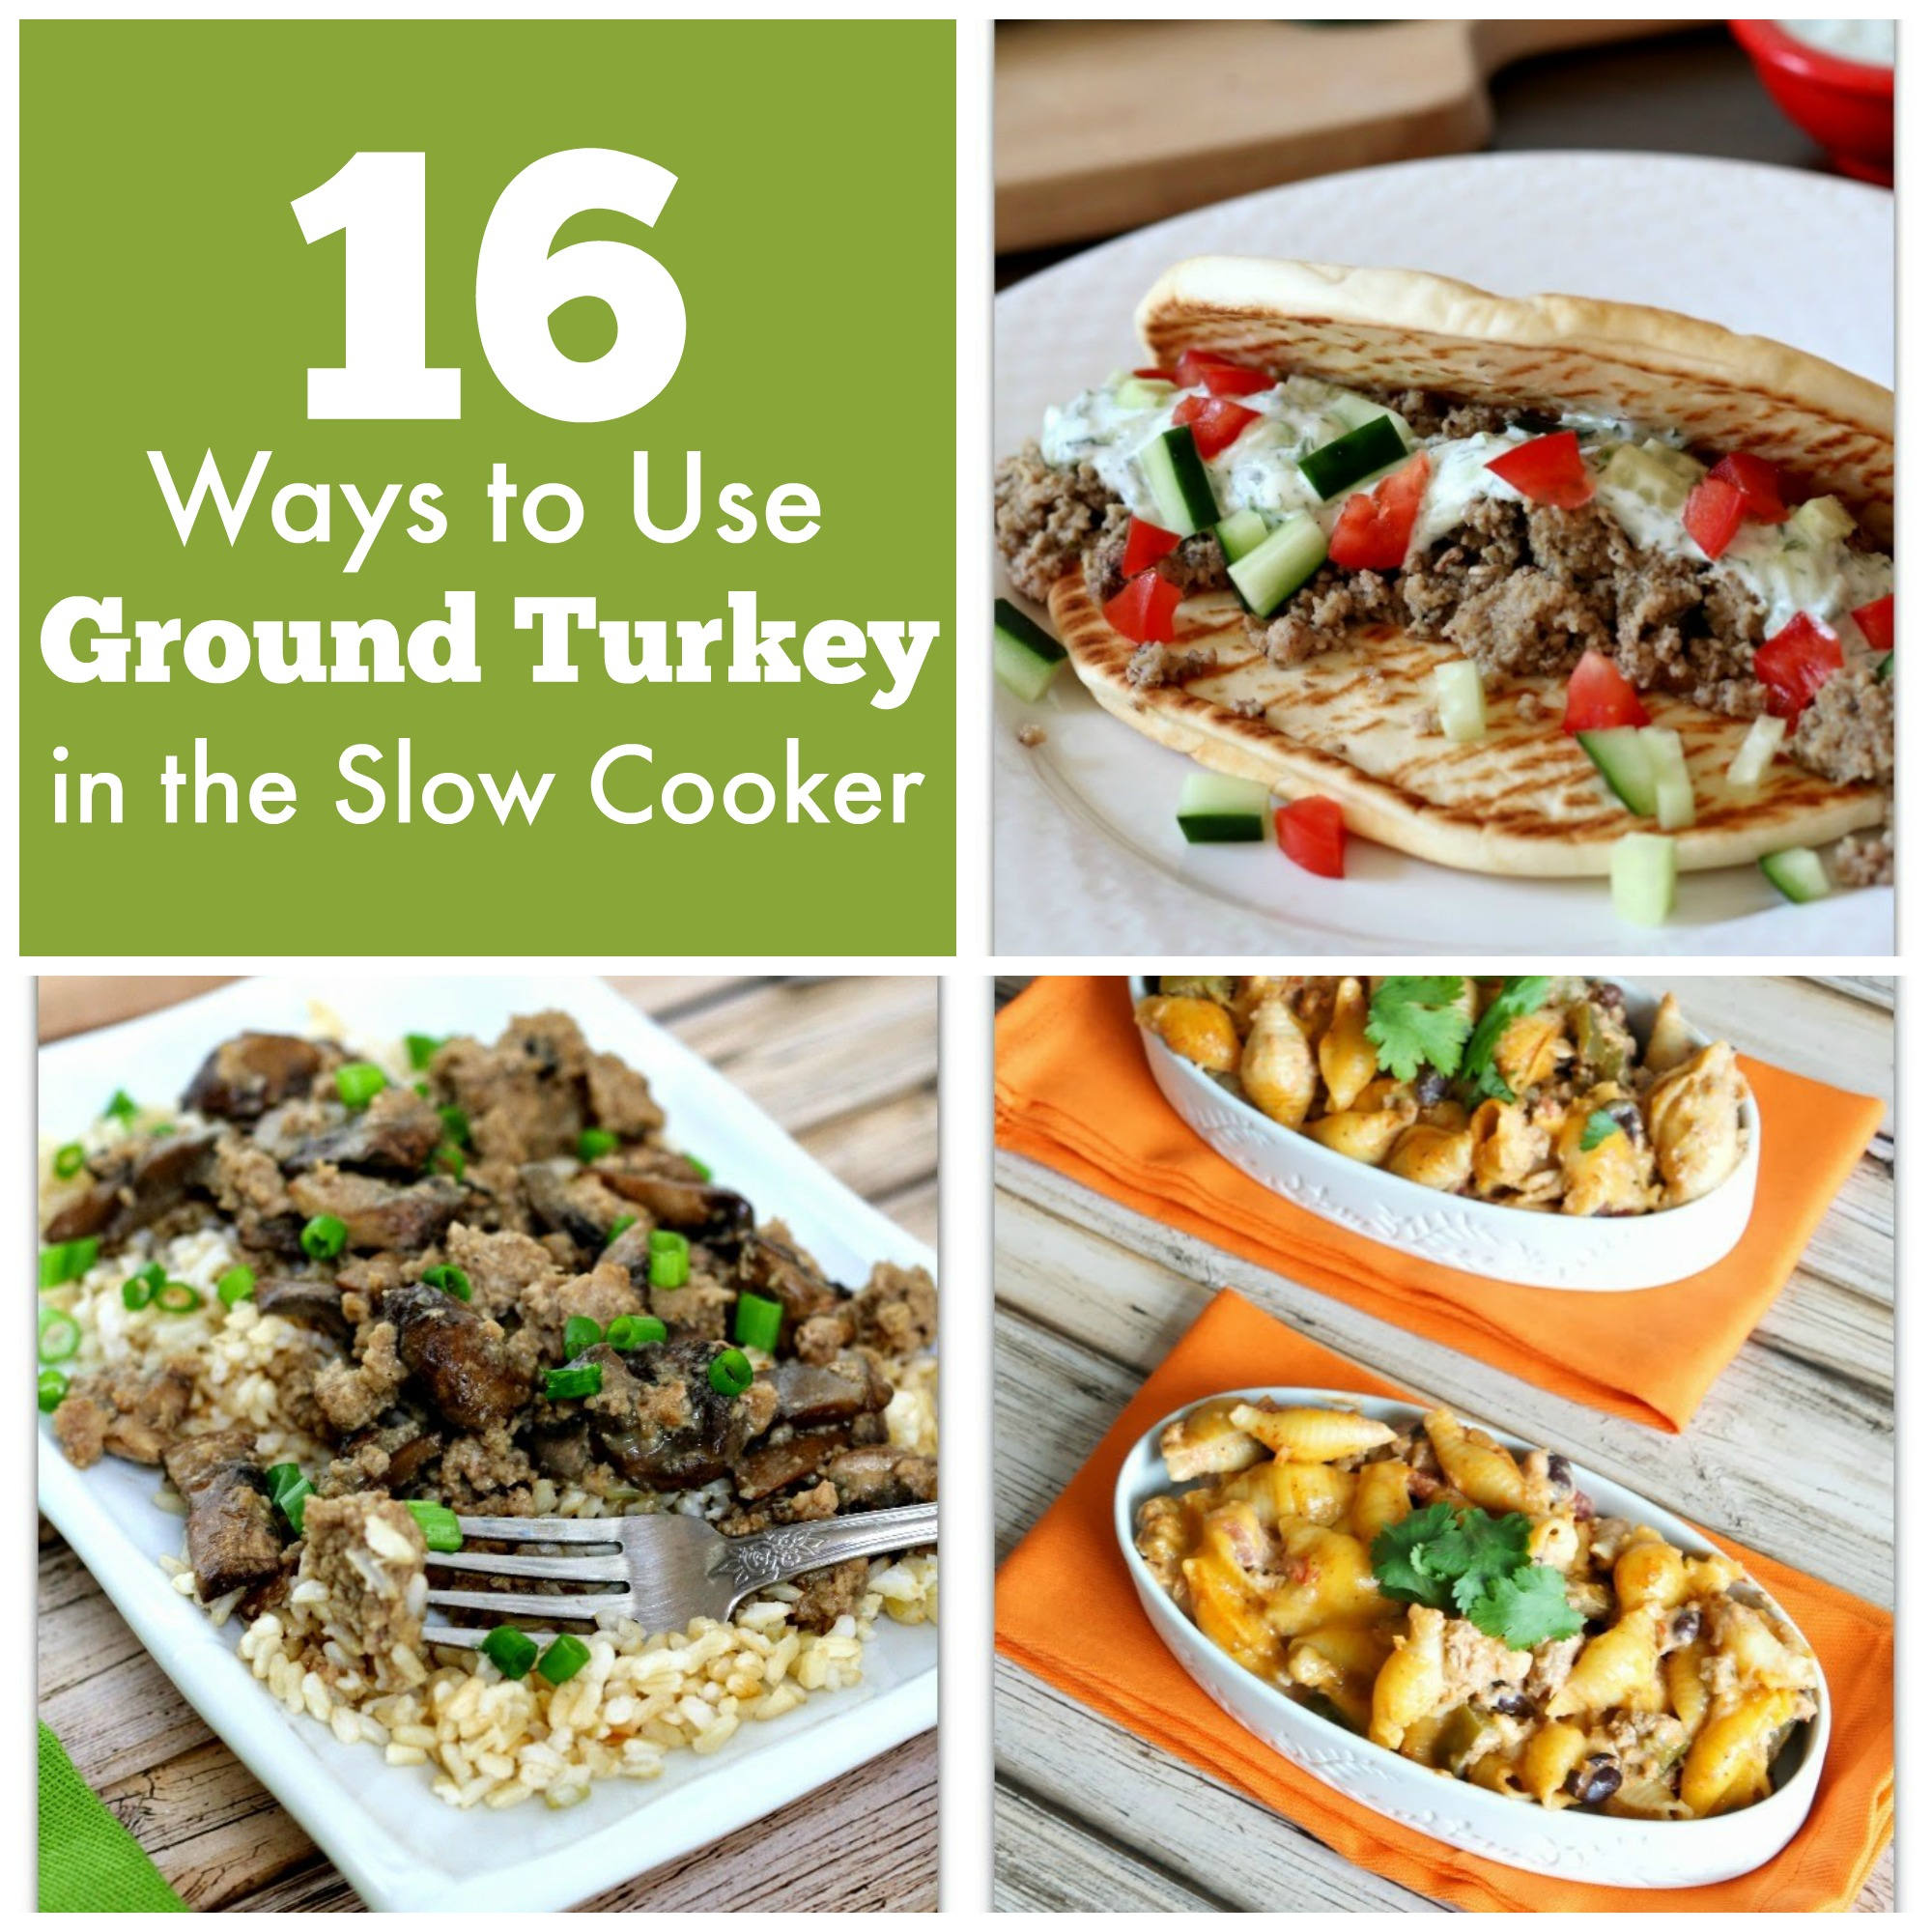 Find and save ideas about Ground turkey slow cooker on Pinterest. | See more ideas about Ground beef crockpot recipes, Crockpot ground turkey and Crock pot pasta. Find and save ideas about Ground turkey slow cooker on Pinterest. | See more ideas about Ground beef crockpot recipes, Crockpot ground turkey and Crock pot pasta.